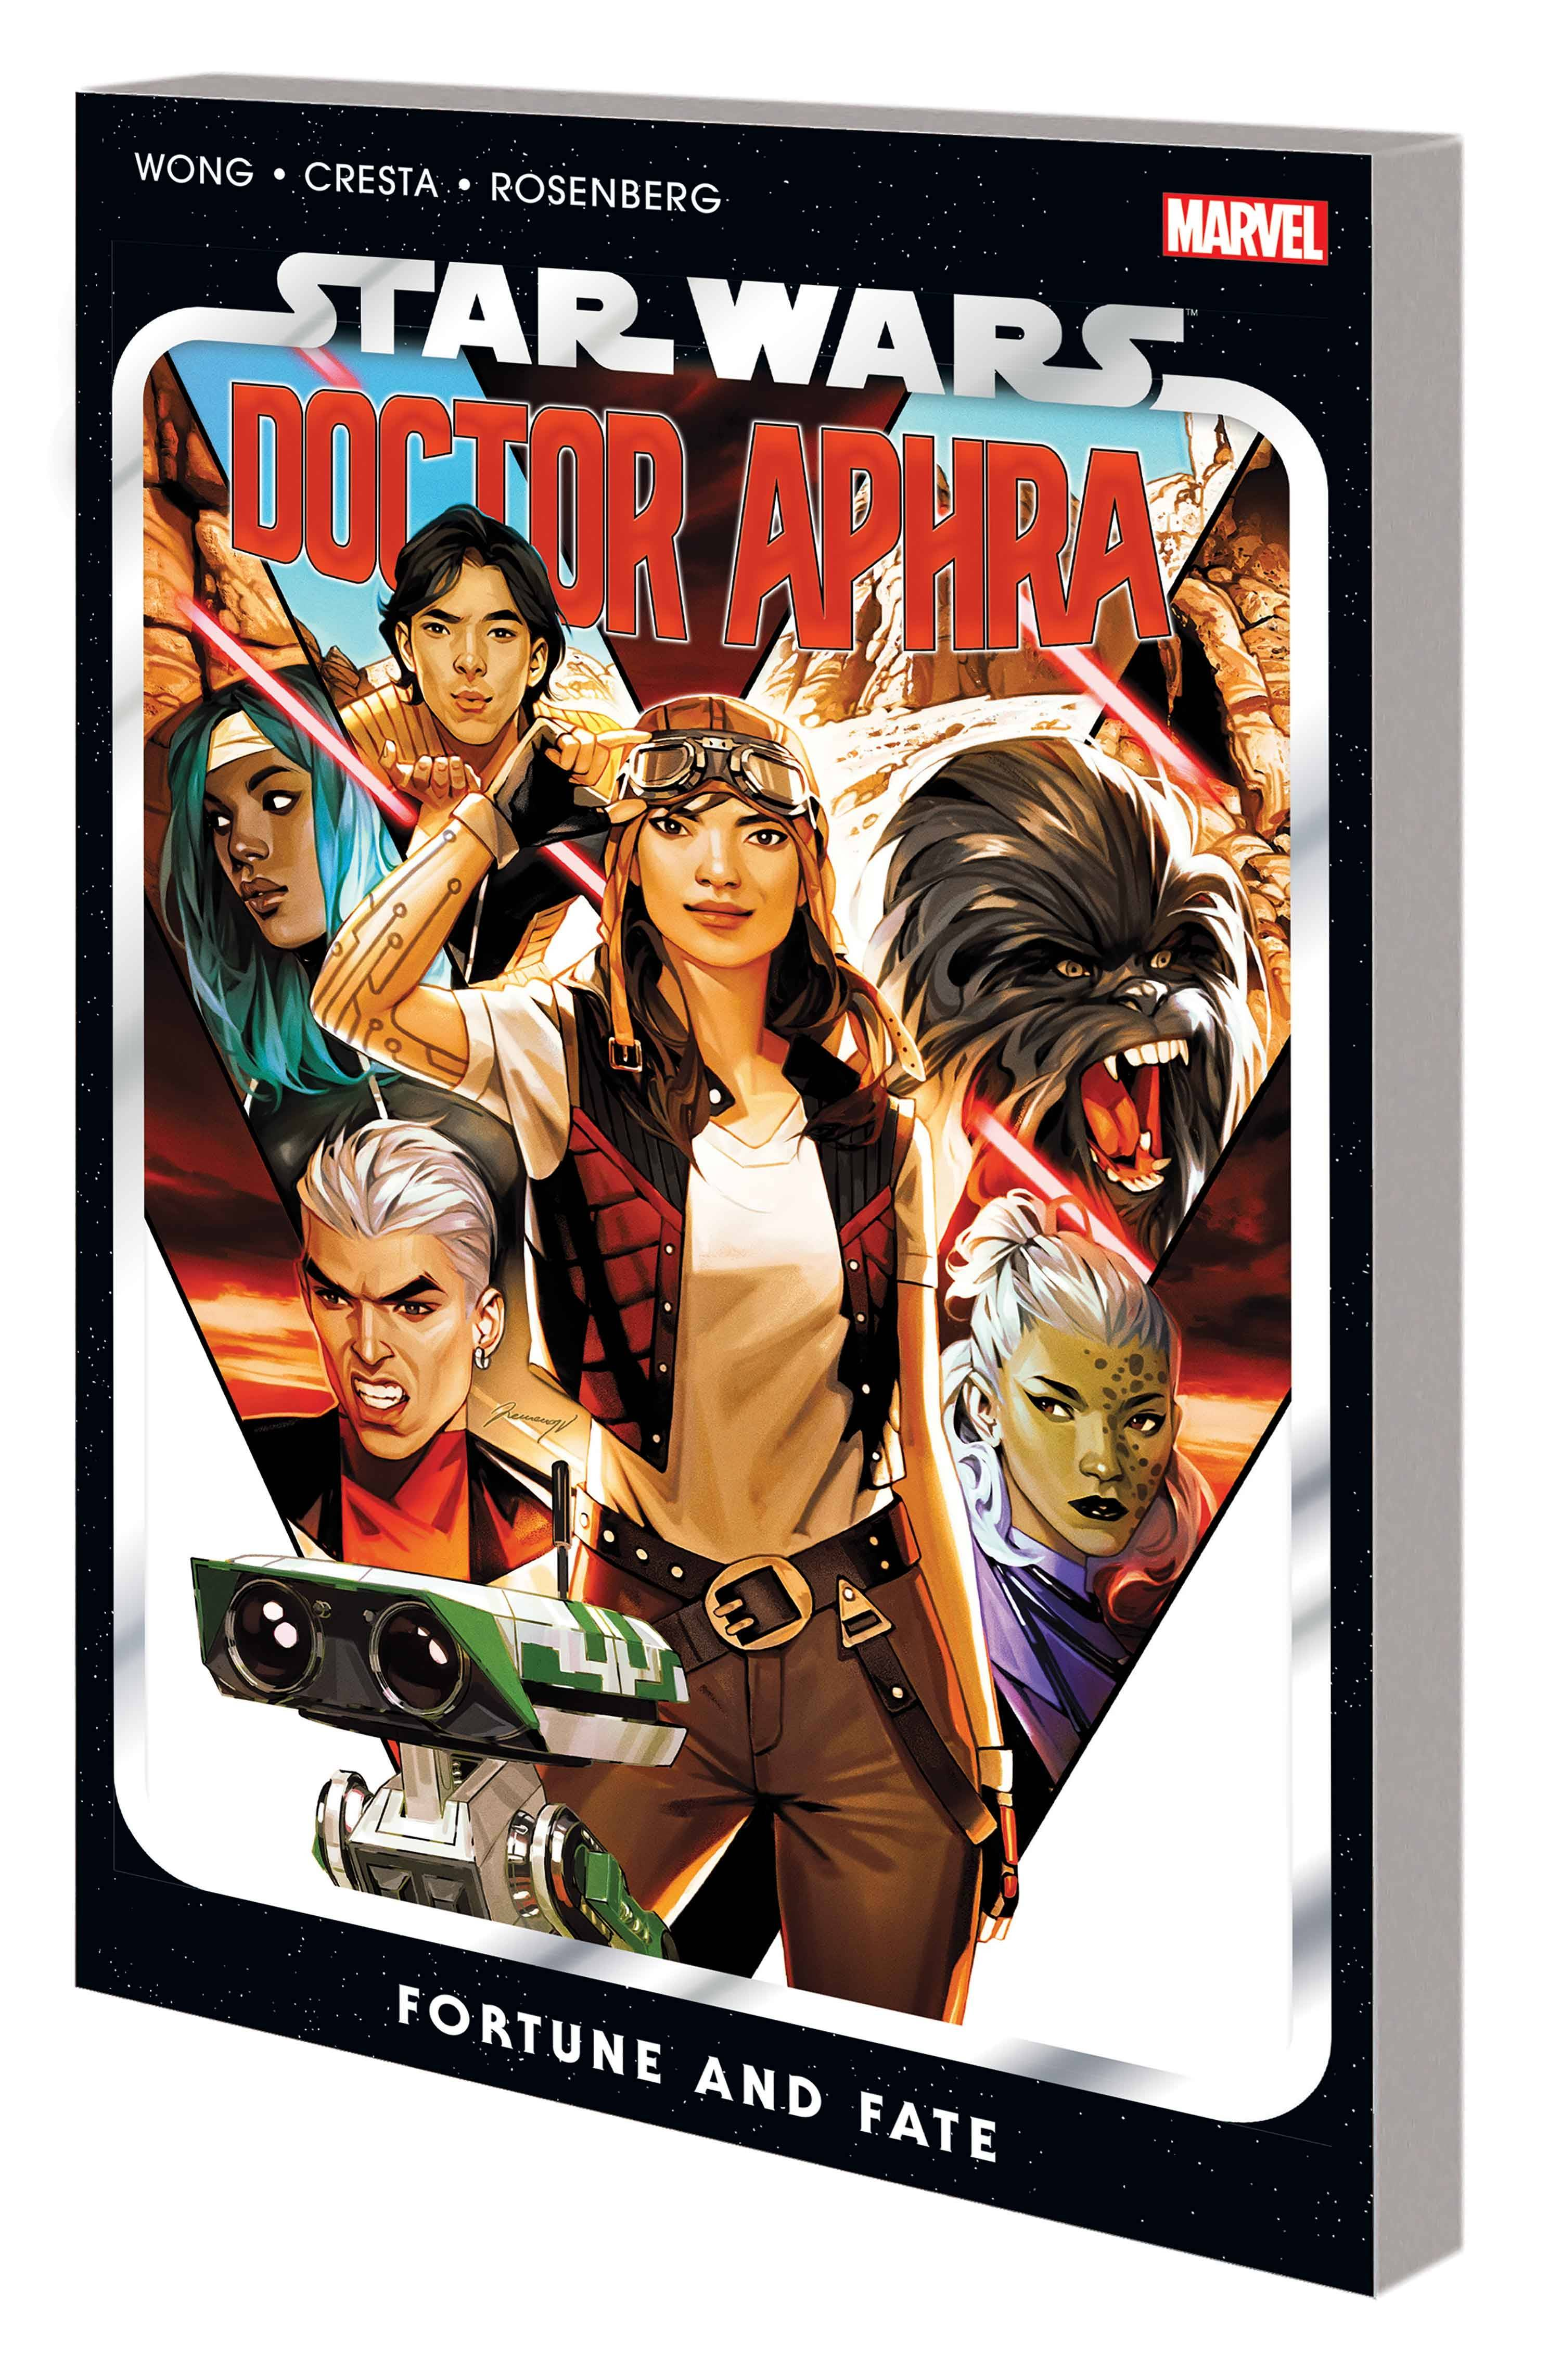 Star Wars Doctor Aphra Tp Vol 01 Fortune And Fate (STL171283)